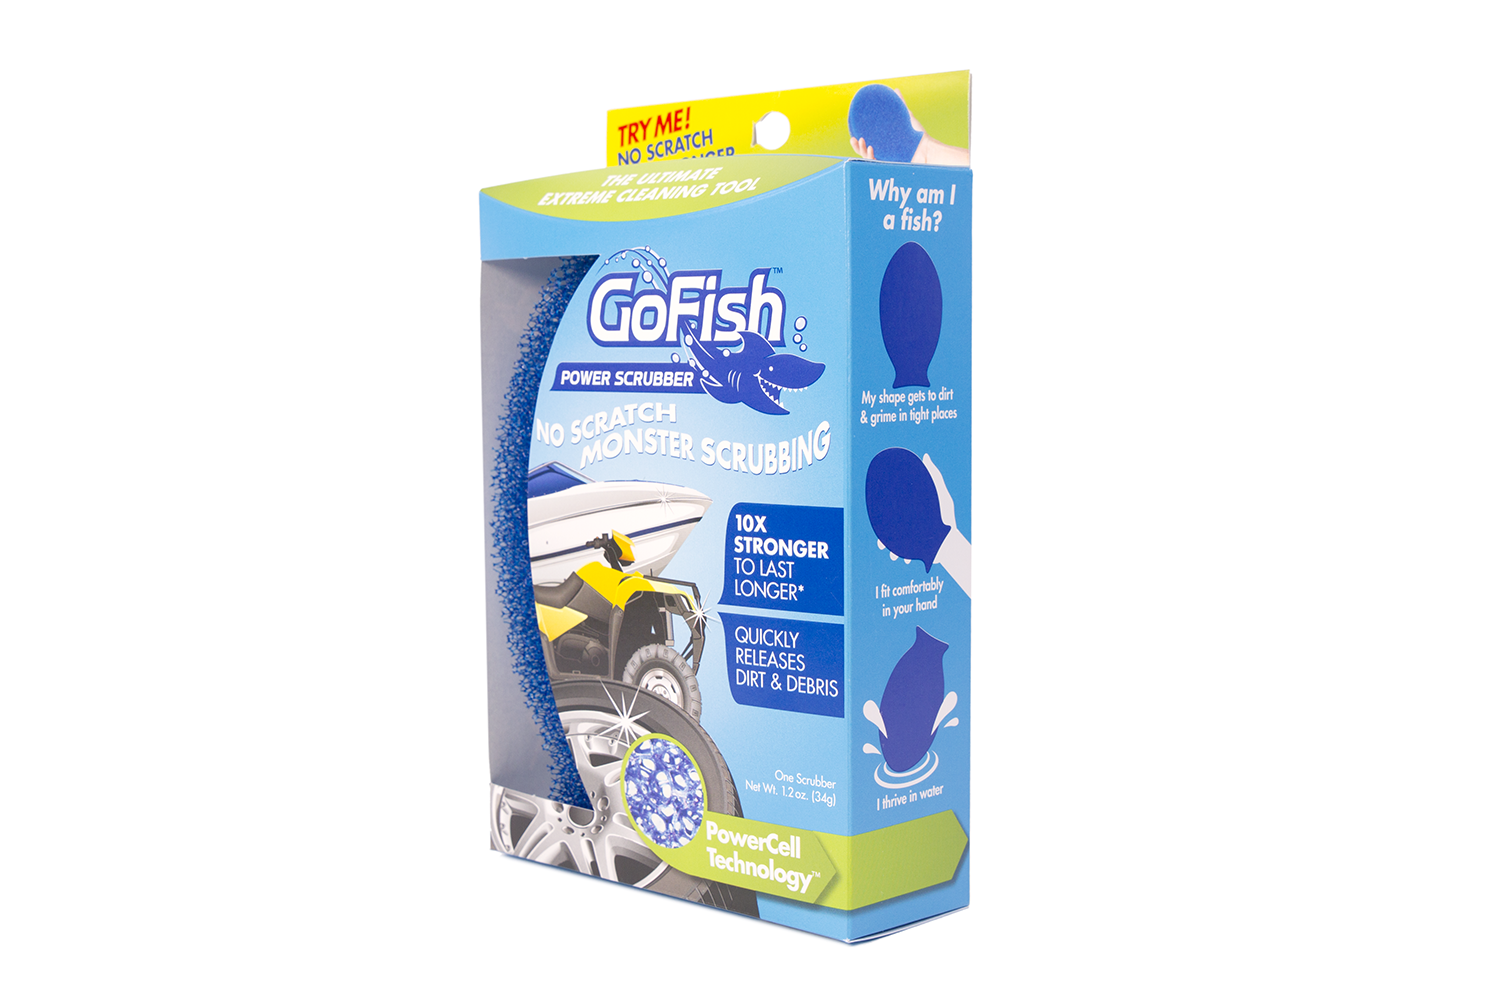 dishfish-gofish-power-scrubber-1pack-right-front.png